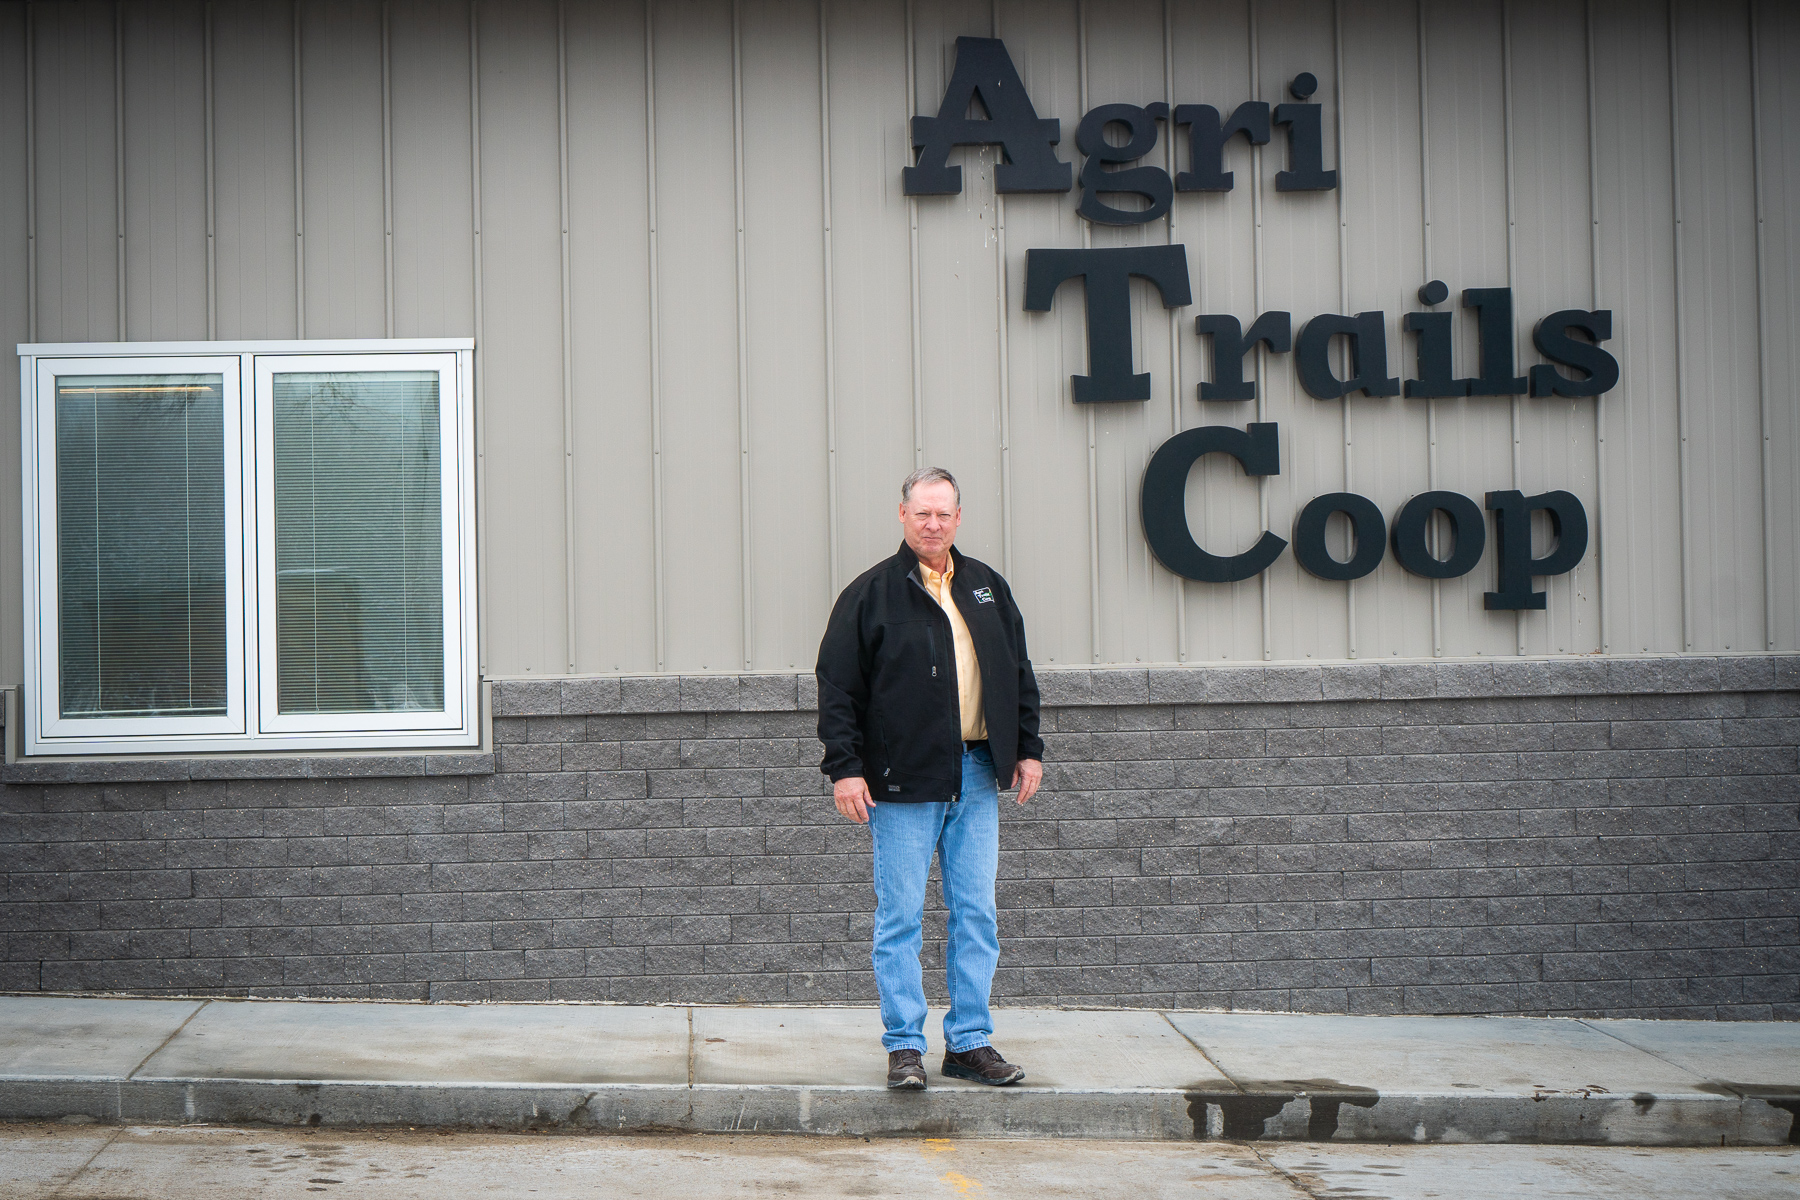 Darel Anderson, general manager at Agri Trails Coop in Hope, Kansas on January 15, 2019. He worked closely with Lucas Hicks and said that not a single day passes not thinking about the two young men that died in August last year.